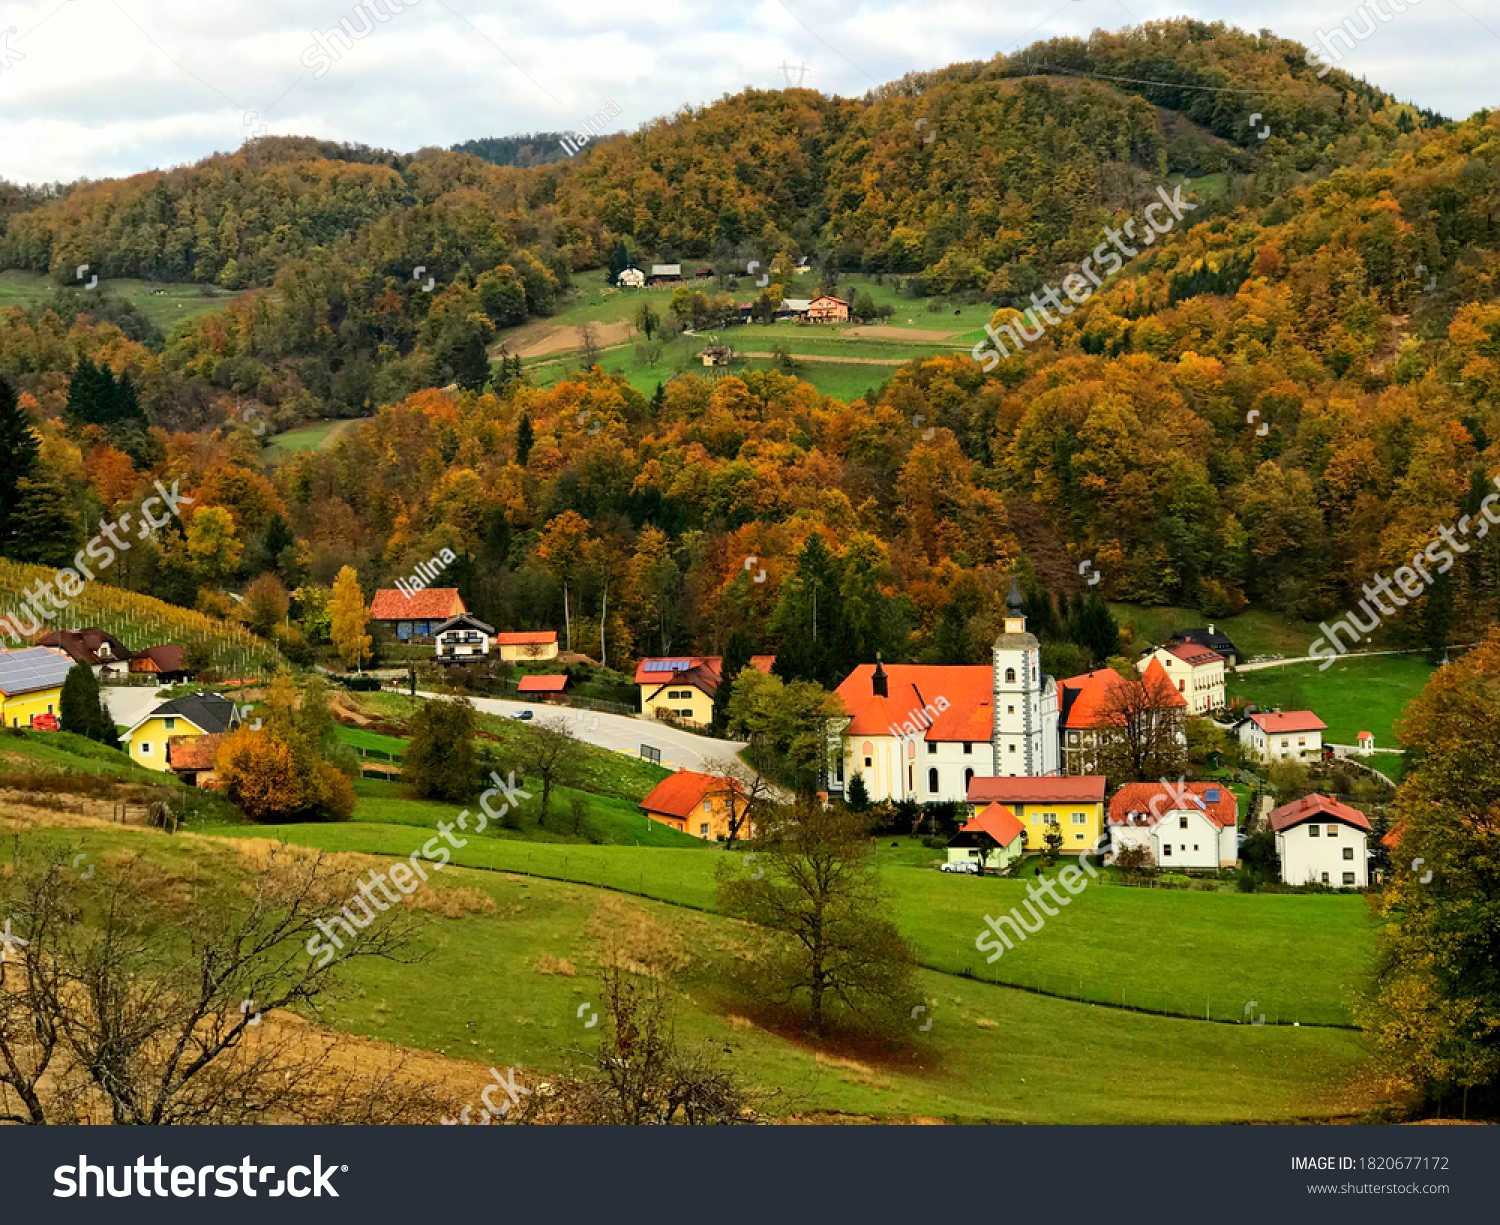 Beautiful idyllic rural landscape, Slovenia. Picturesque idyllic village of Olimje. Scenic slovenian countryside. Green hills. Autumn forest. Stunning nature. Wonderful peaceful land. Natural beauty.